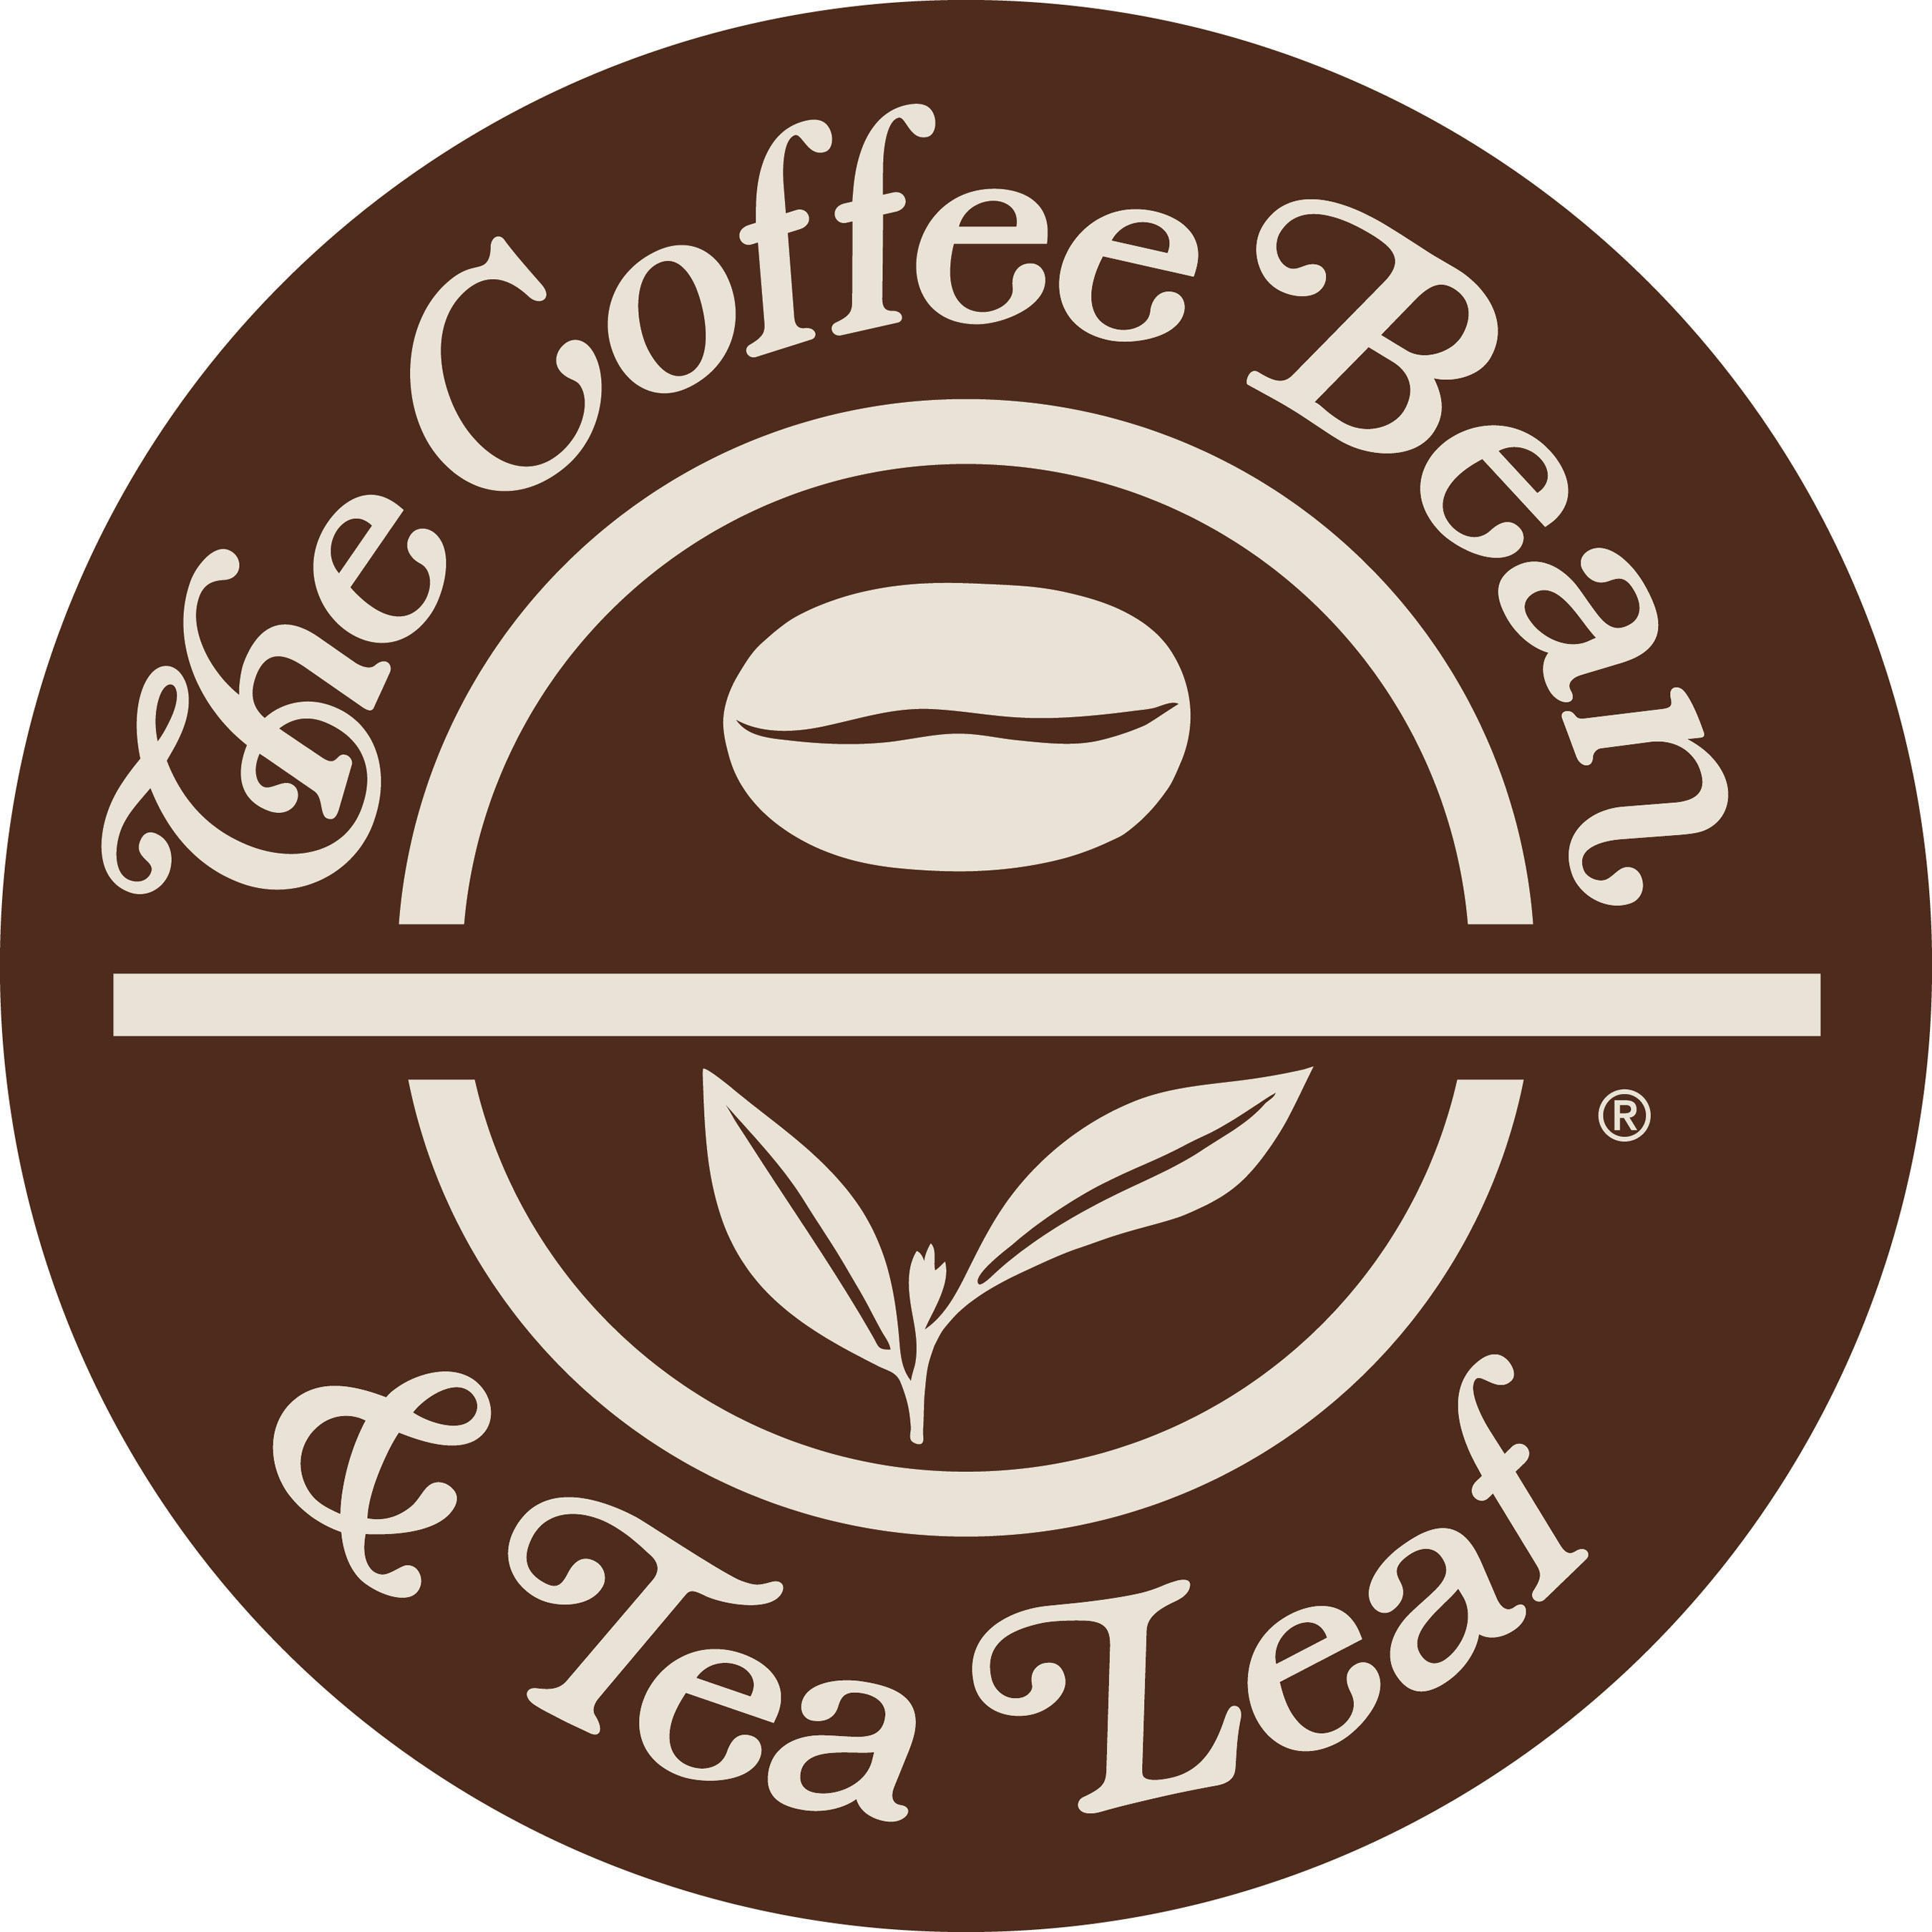 The Coffee Bean And Tea Leaf Logo In 2020 Coffee Beans Tea Leaves Chocolate Covered Coffee Beans